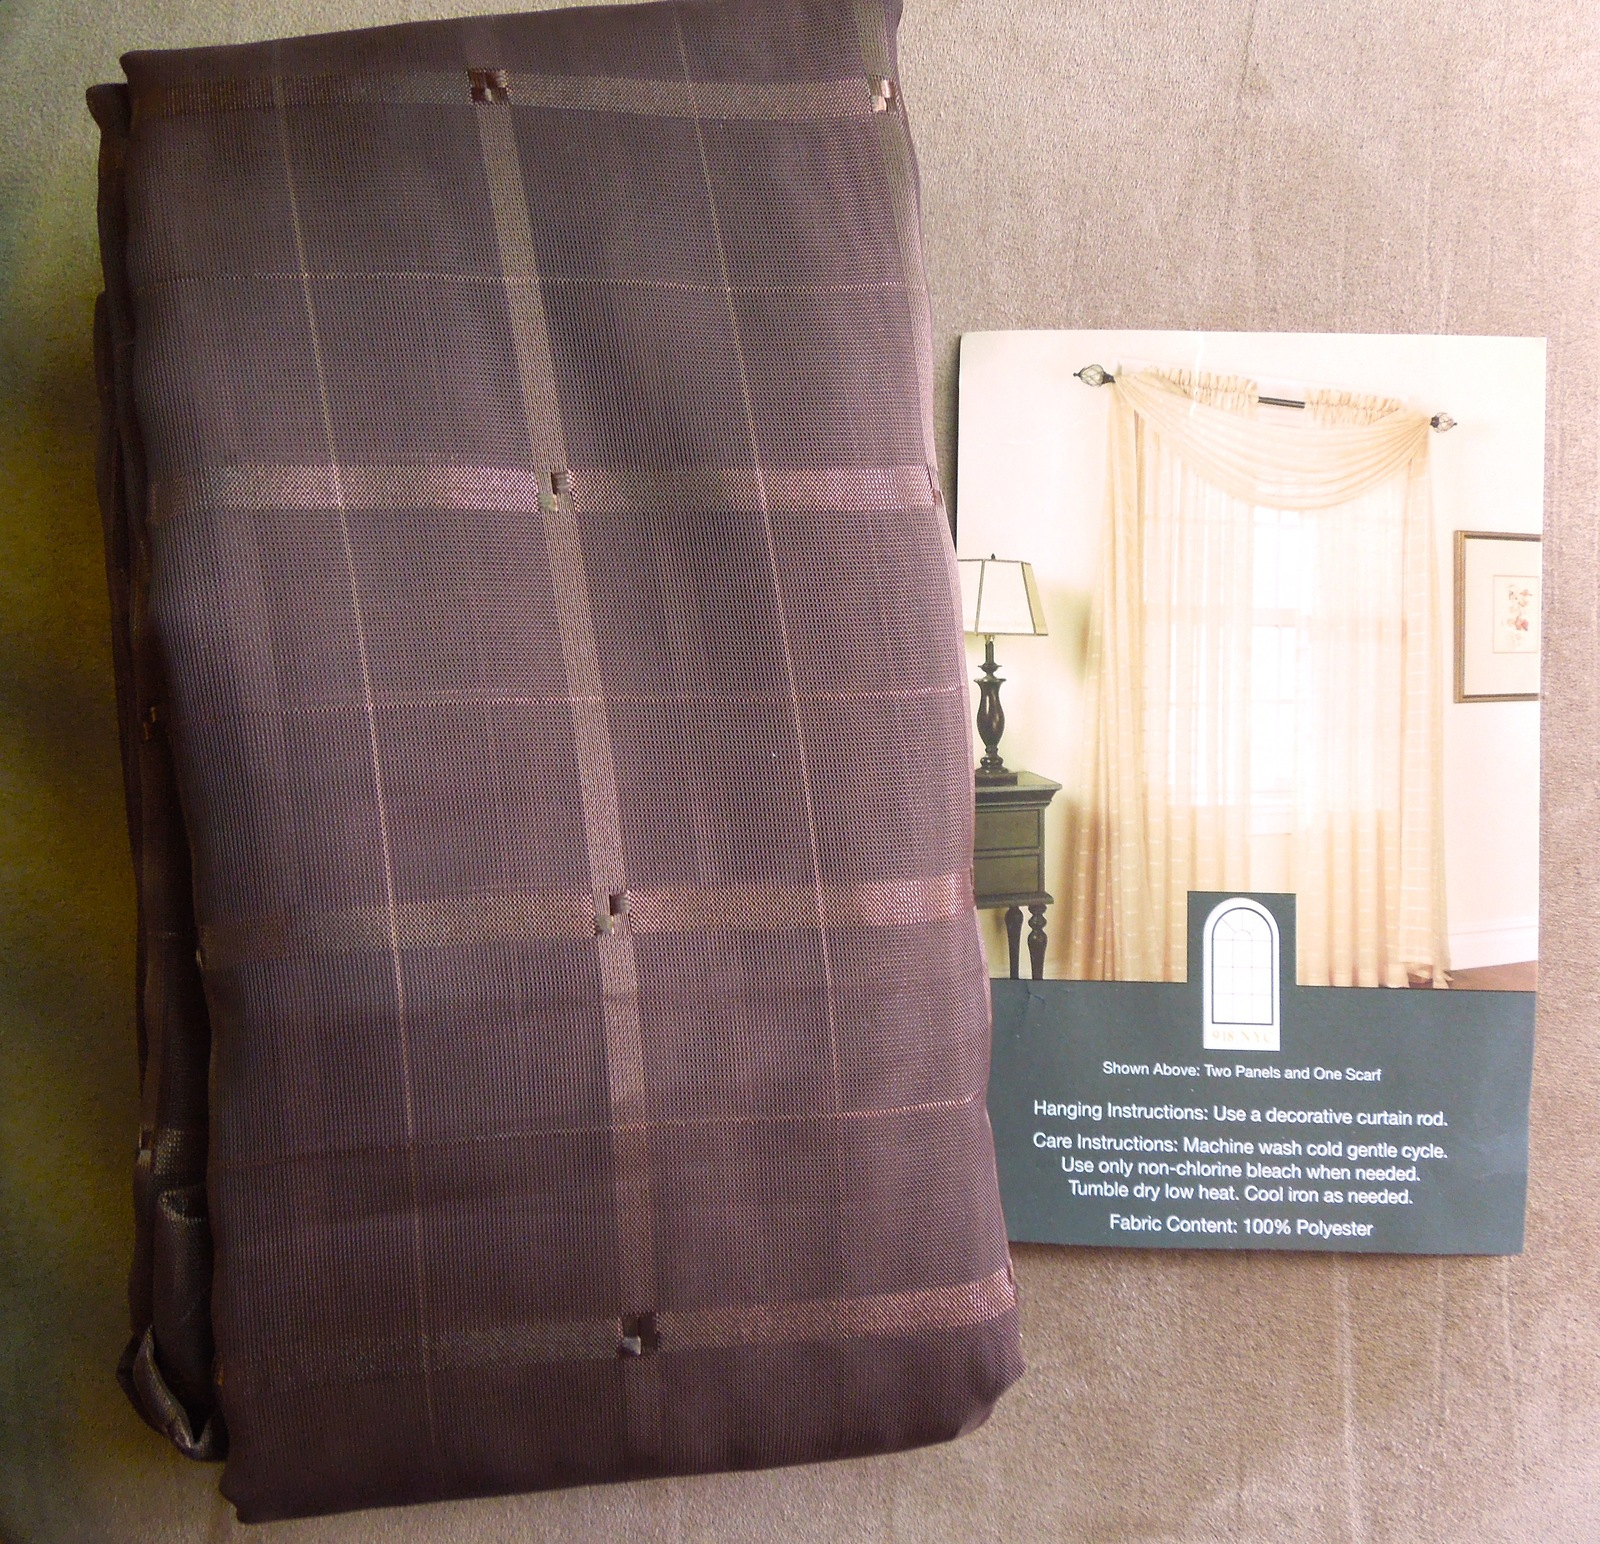 19  fortune sheer scarf valance    chocolate tone on tone plaid  poly wash china 73132040018  731320400301 jcp 7 27 12 4.90 x7  5332